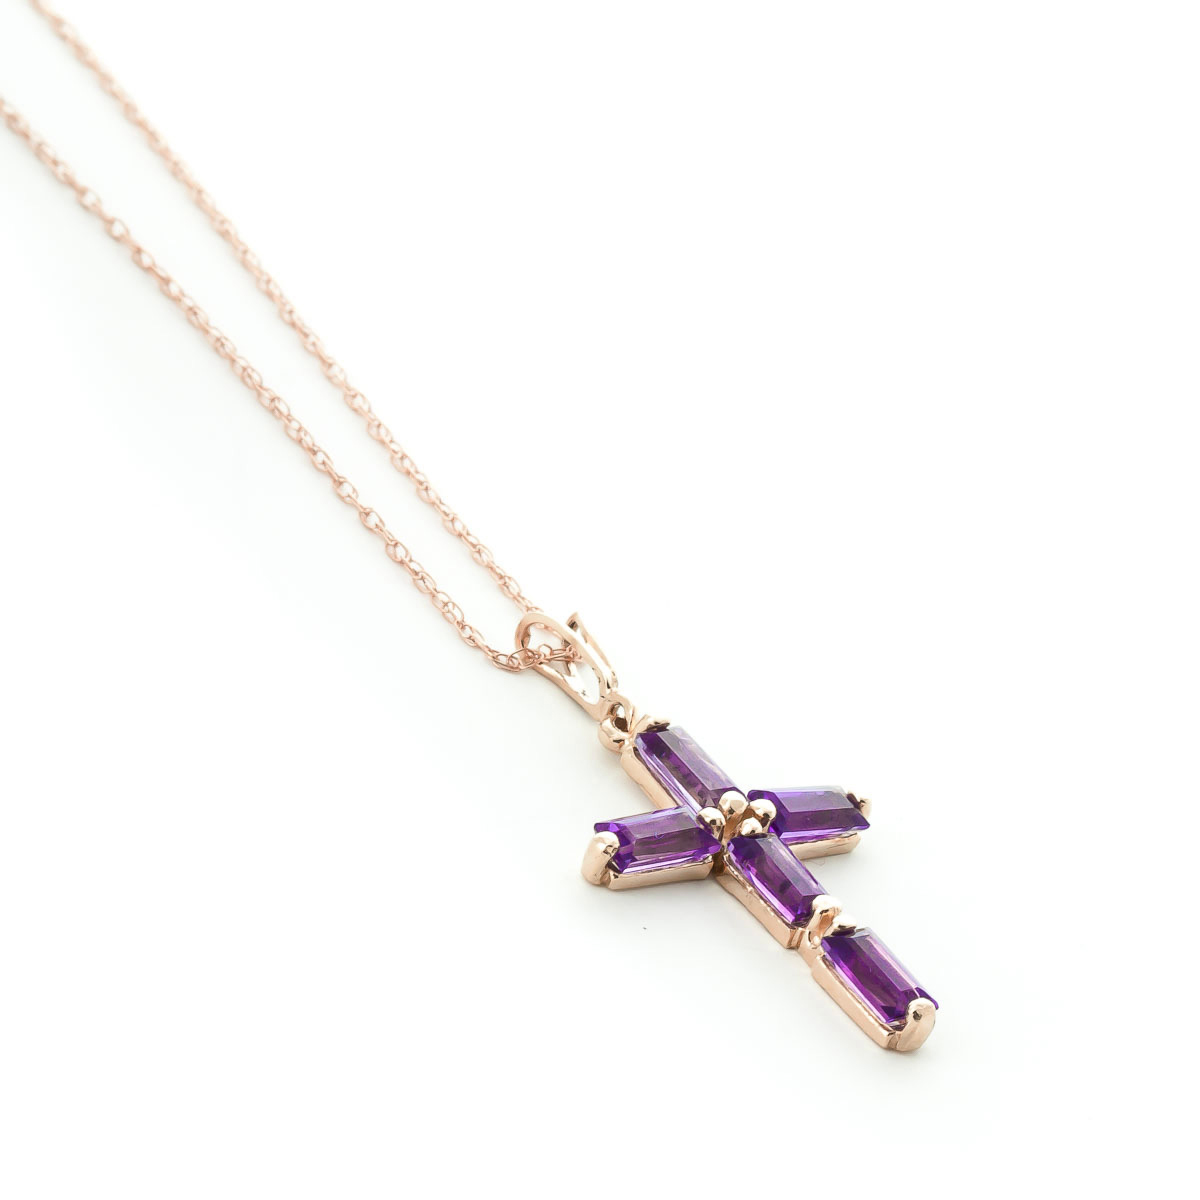 Amethyst Cross Pendant Necklace 1.15 ctw in 9ct Rose Gold